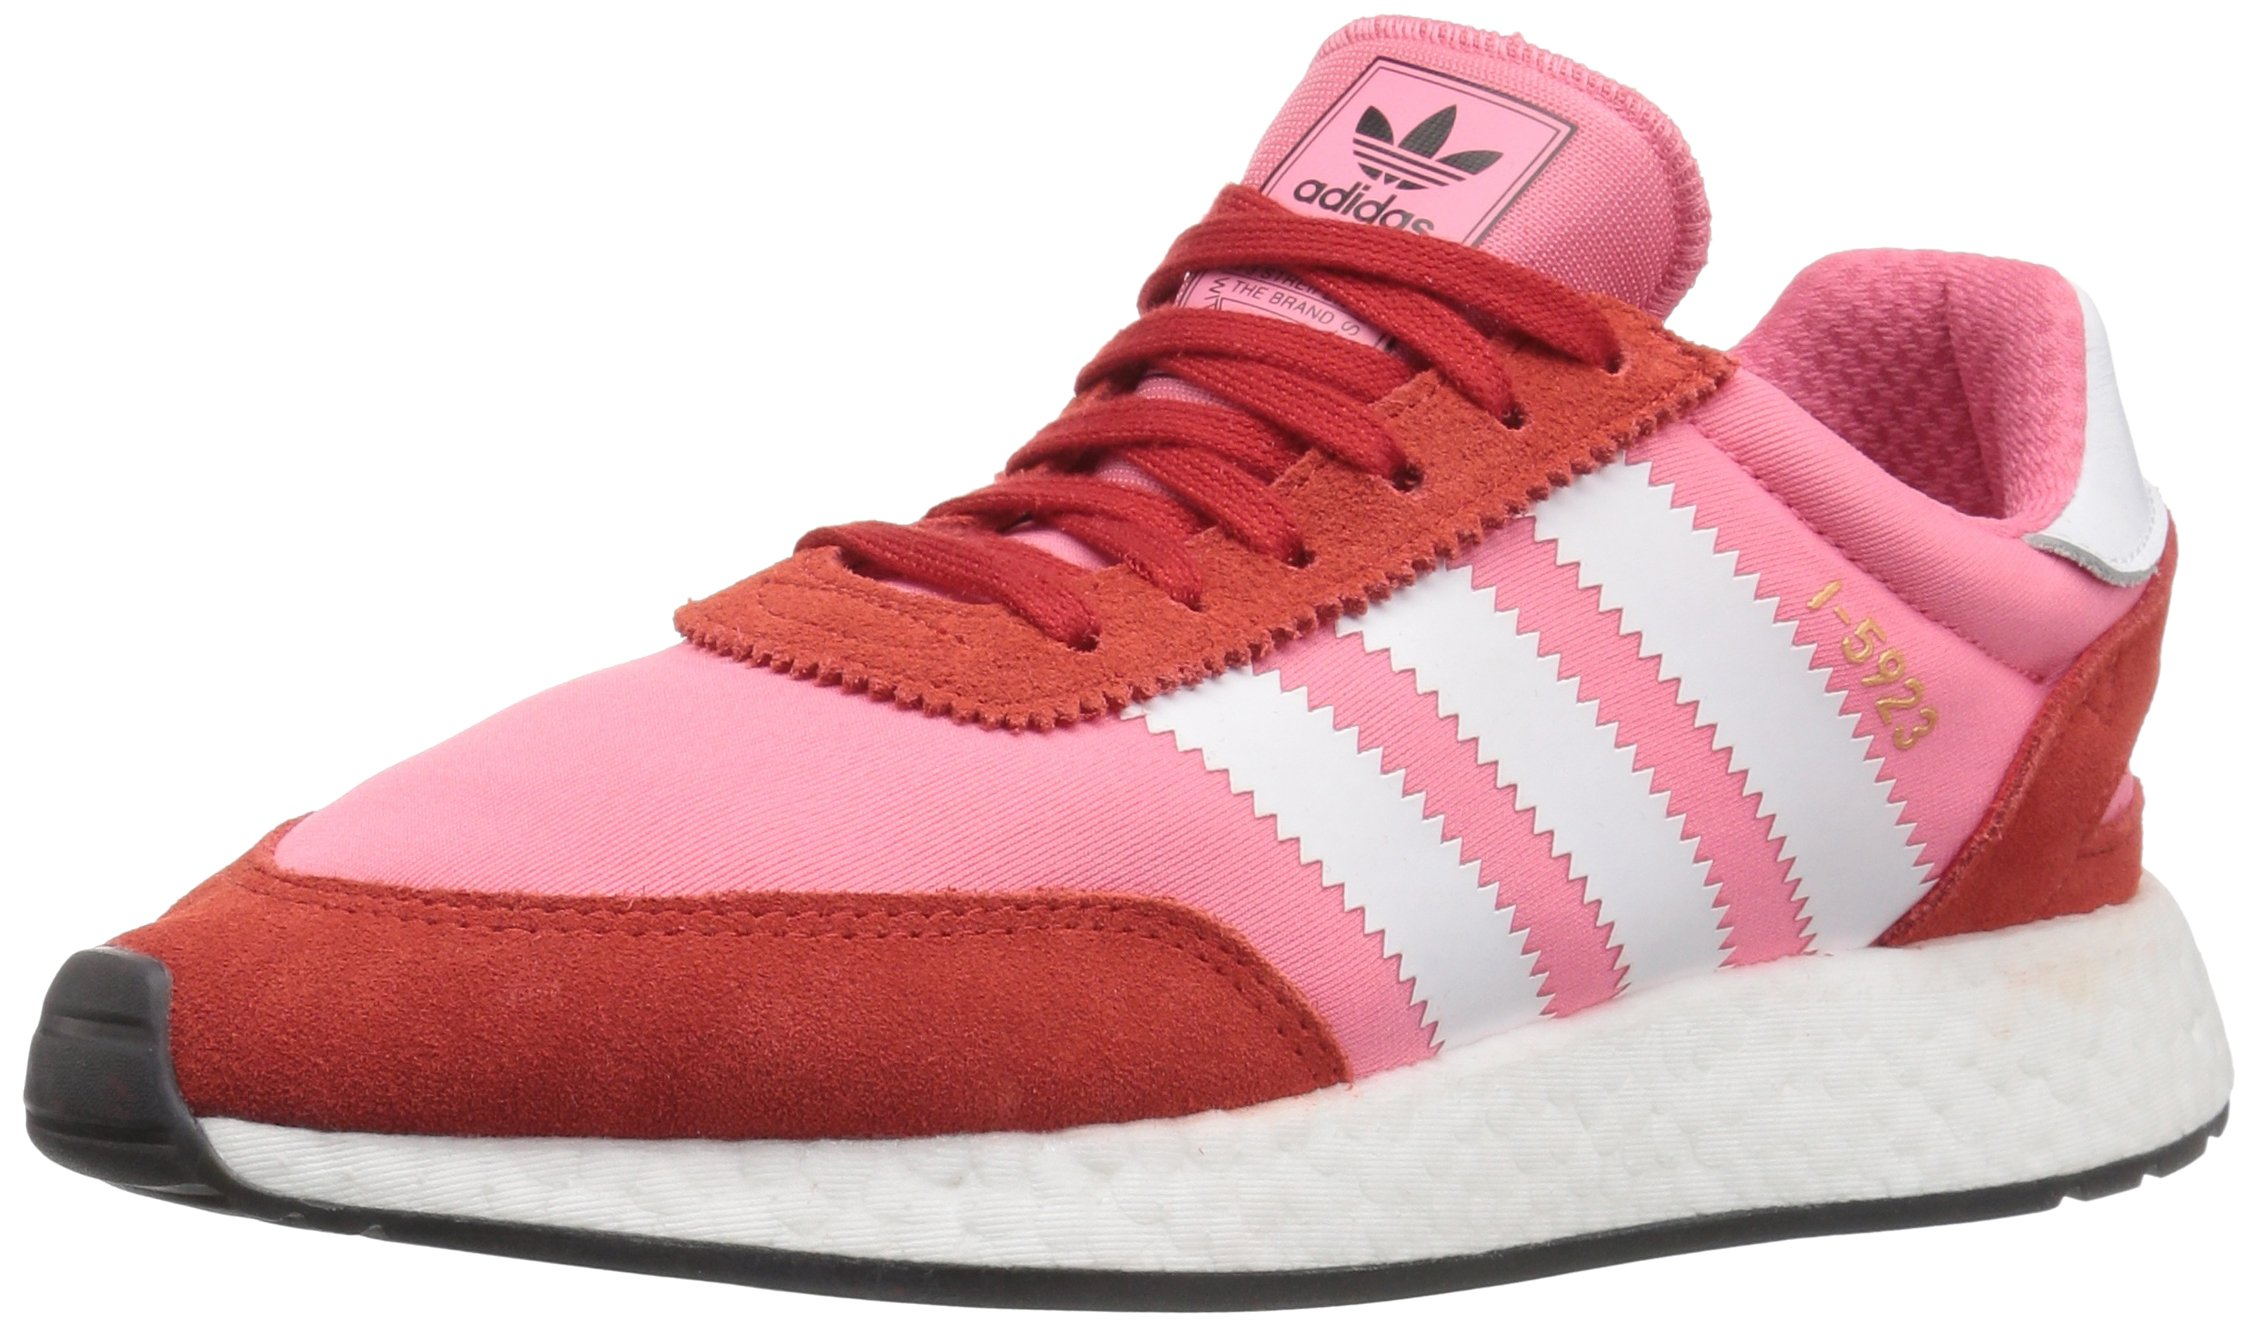 0e7c5f79b6 adidas Originals Women's I-5923 Running Shoe, Chalk Pink/White/red, 7.5 M US